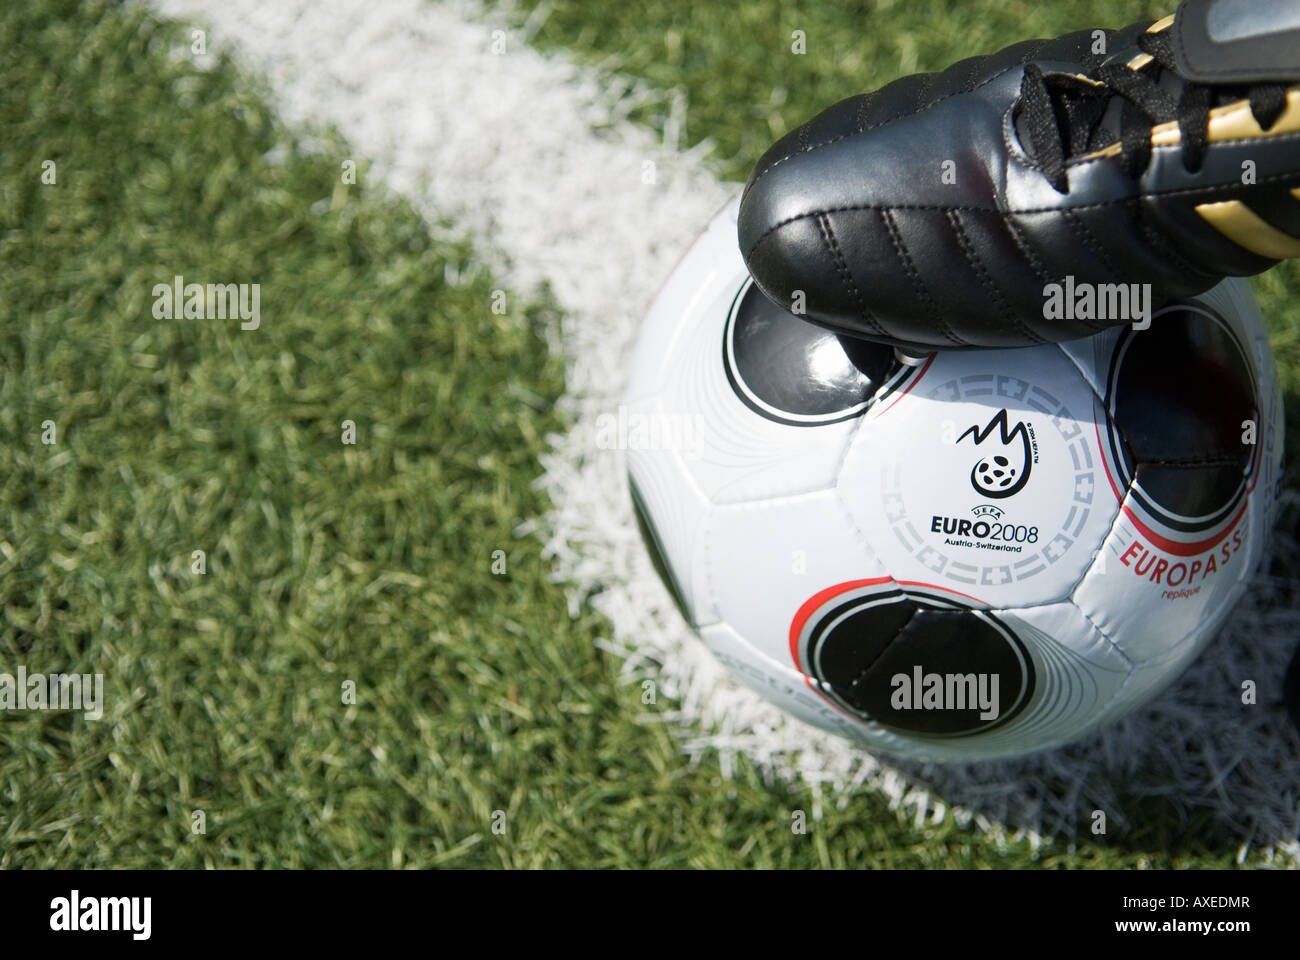 the foot of a football player on a Replica of EUROPASS the official matchball of the European football Tournament Stock Photo